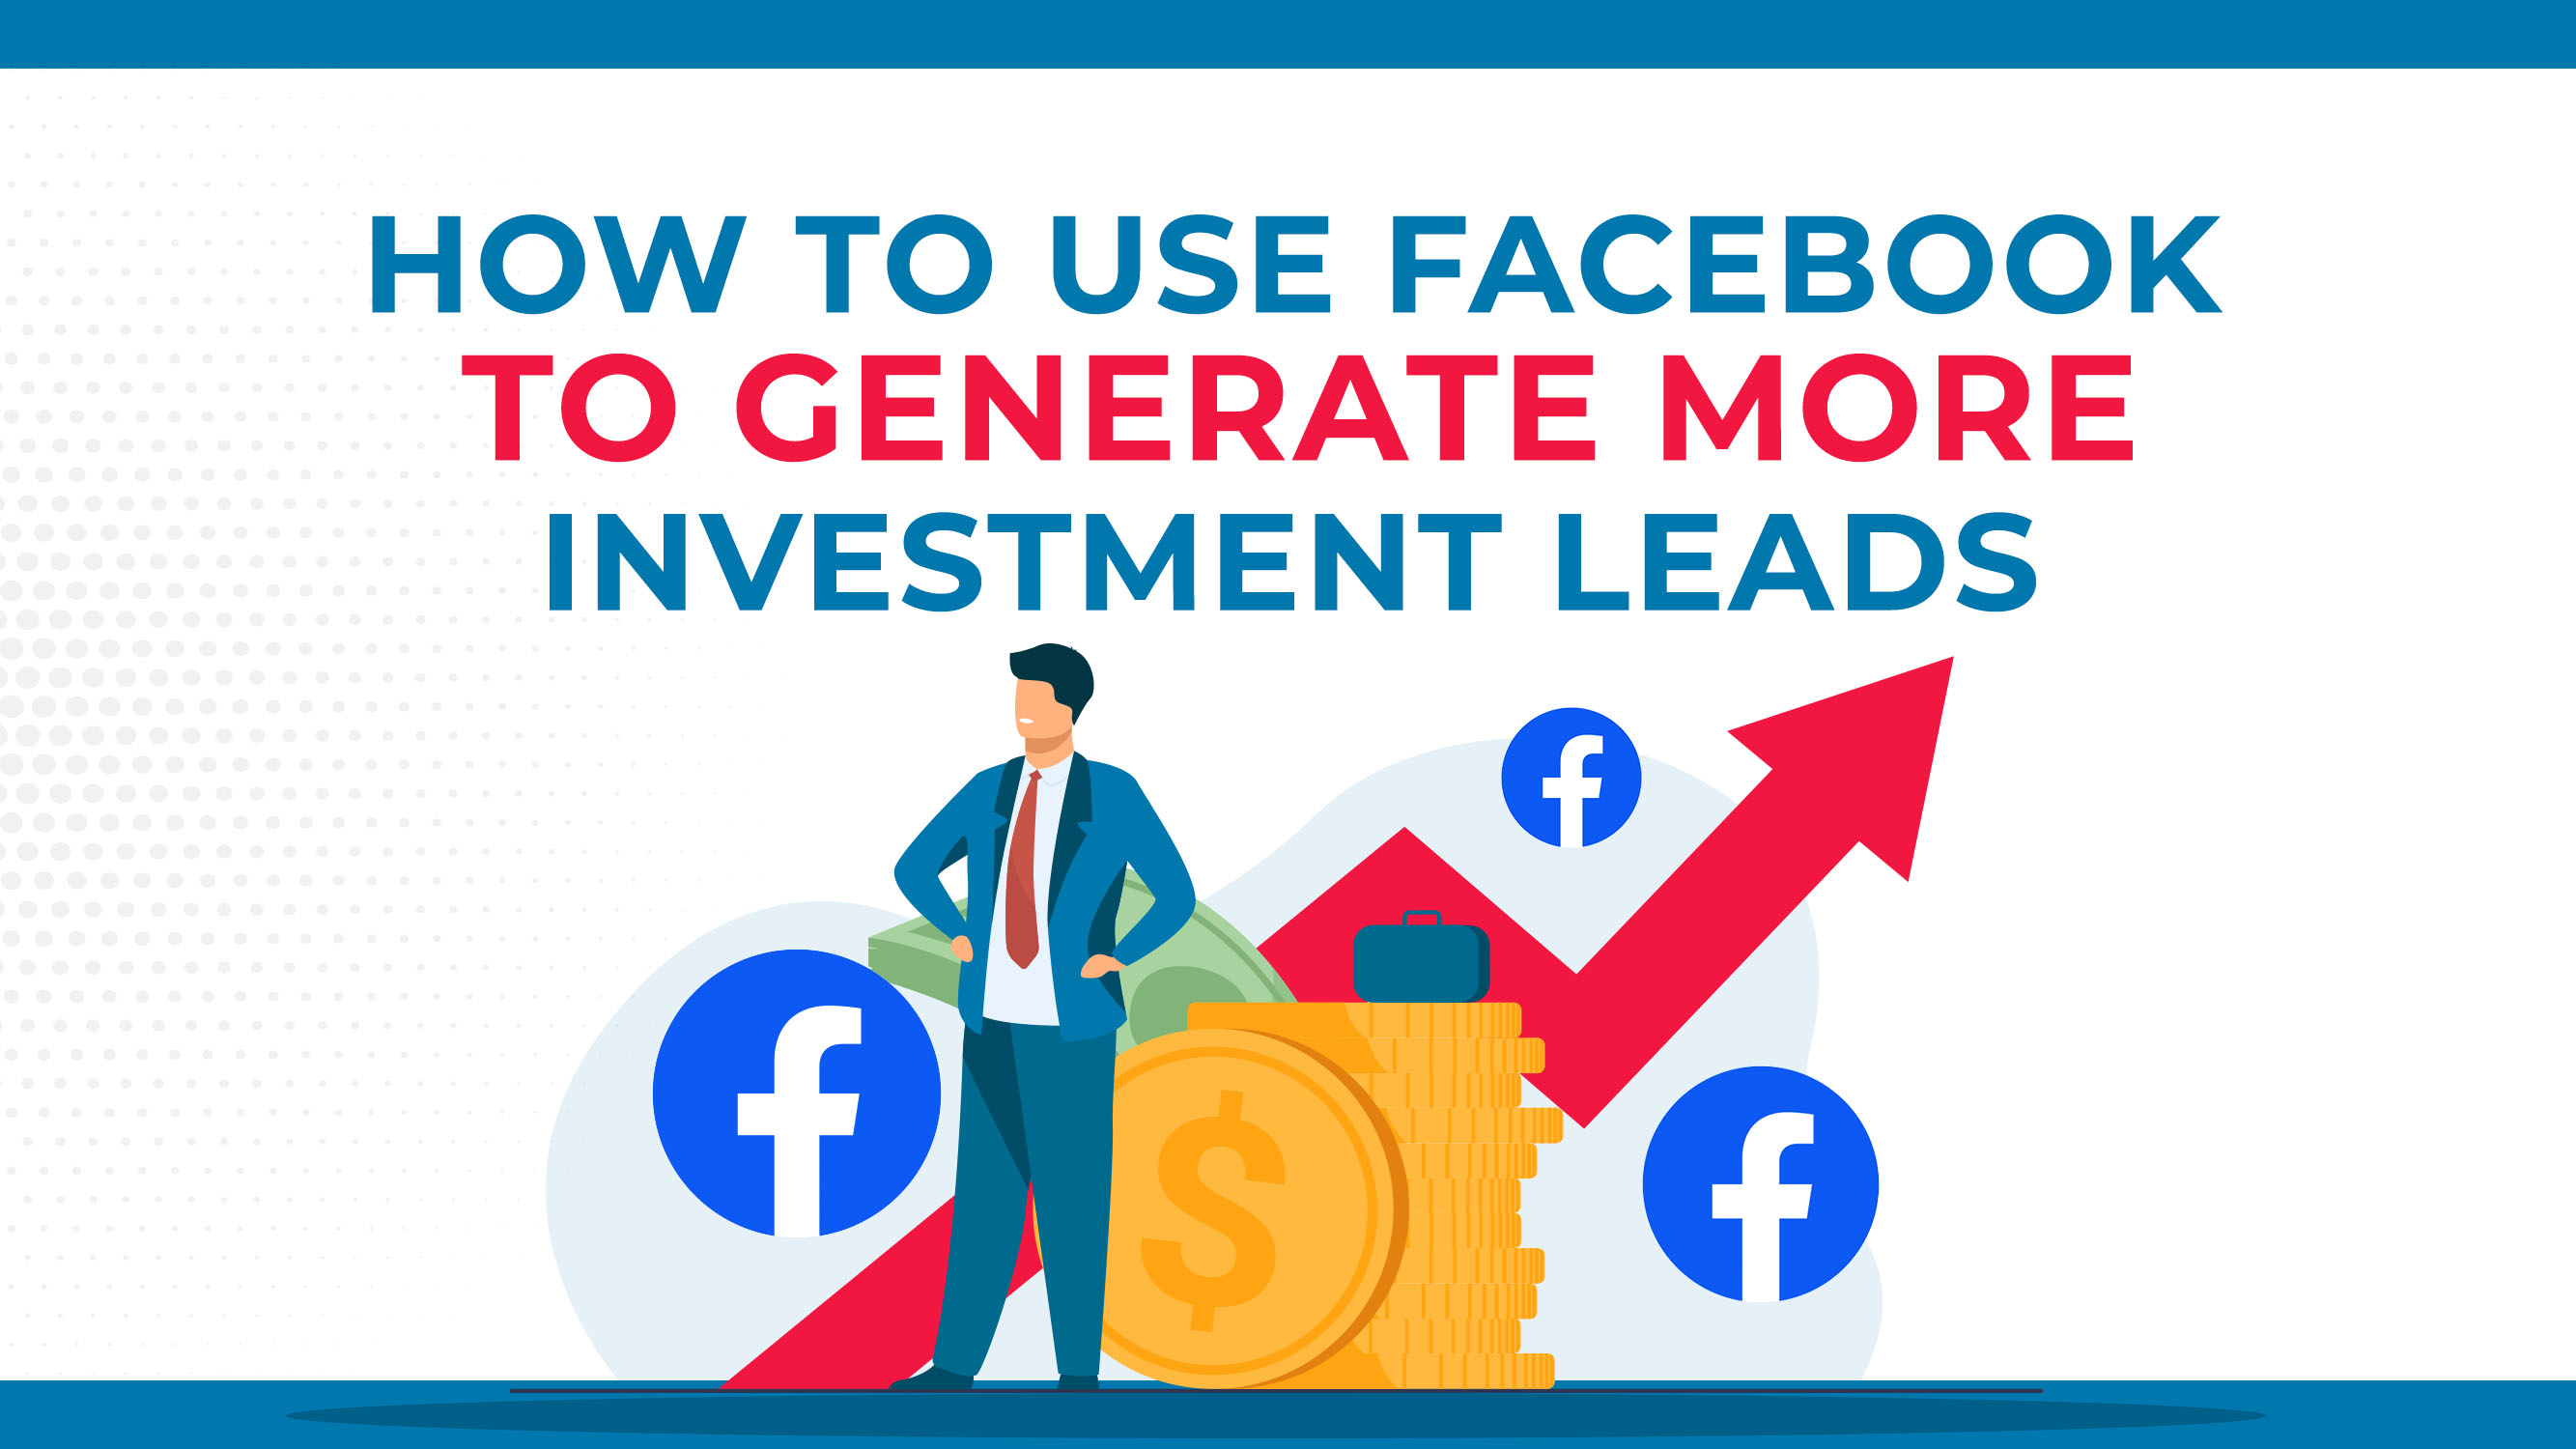 How To Use Facebook To Generate More Investment Leads